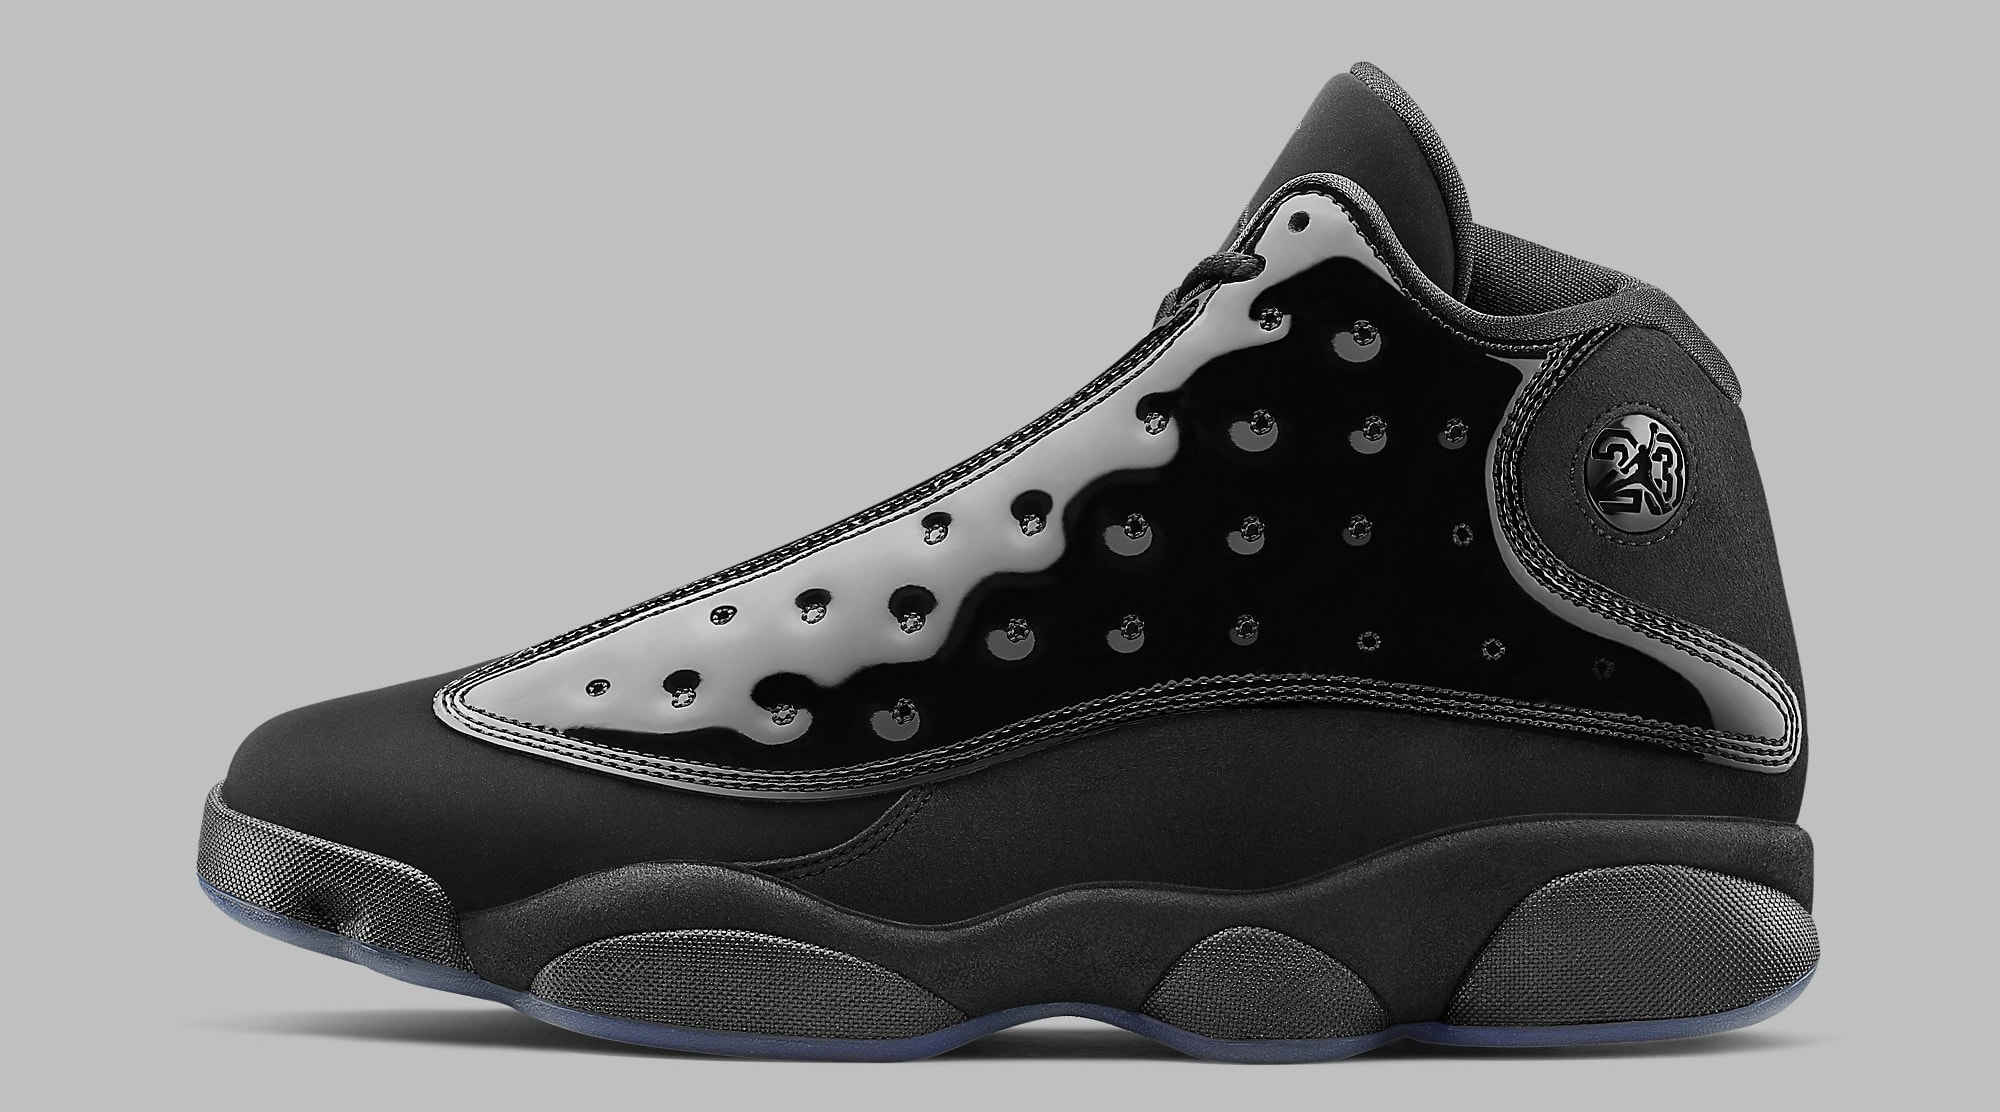 Air Jordan 13 Retro 'Cap and Gown' 414571-012 Lateral